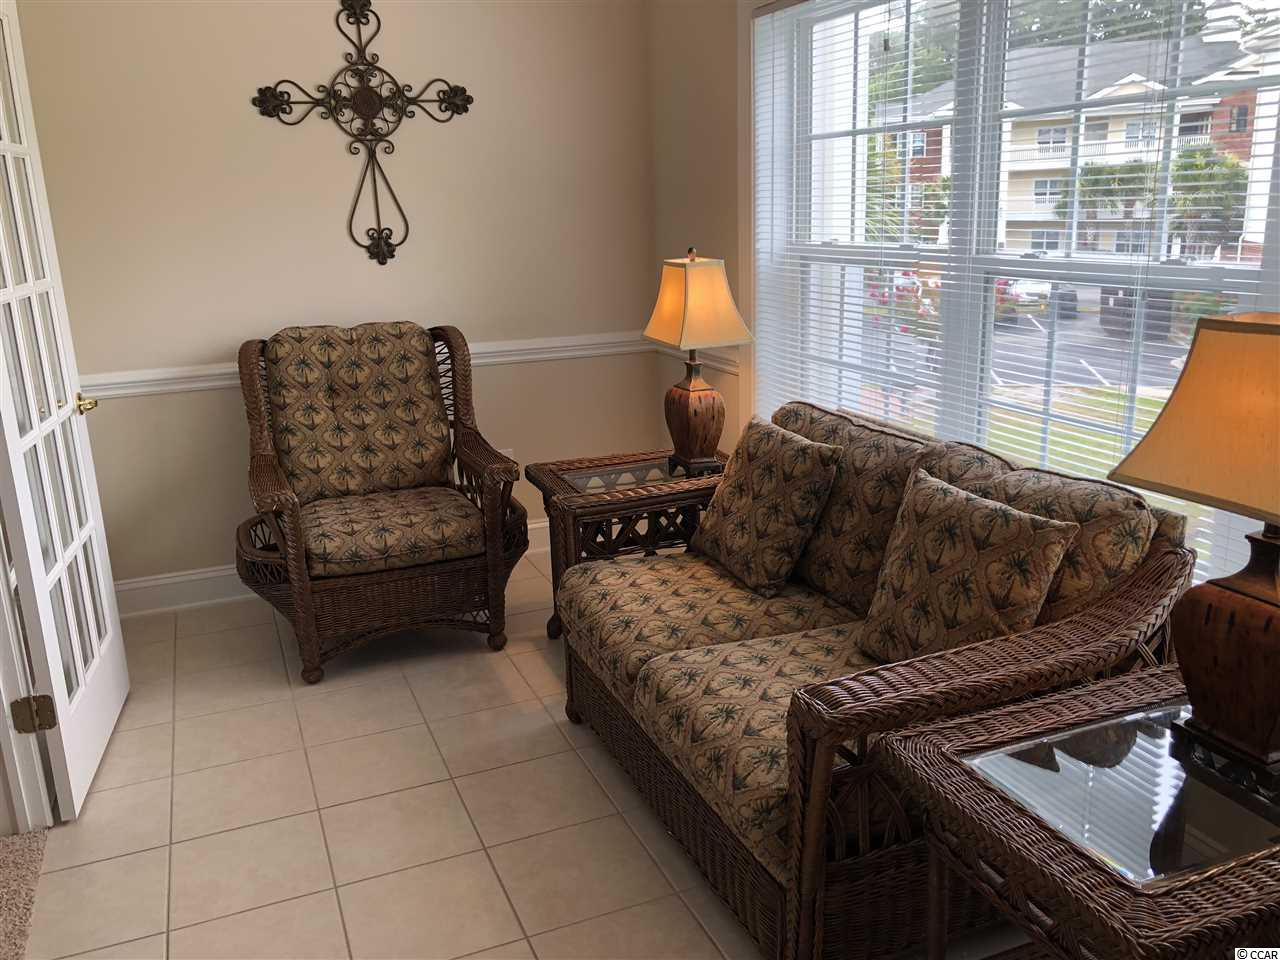 Contact your real estate agent to view this  Tupelo Bay - Garden City condo for sale